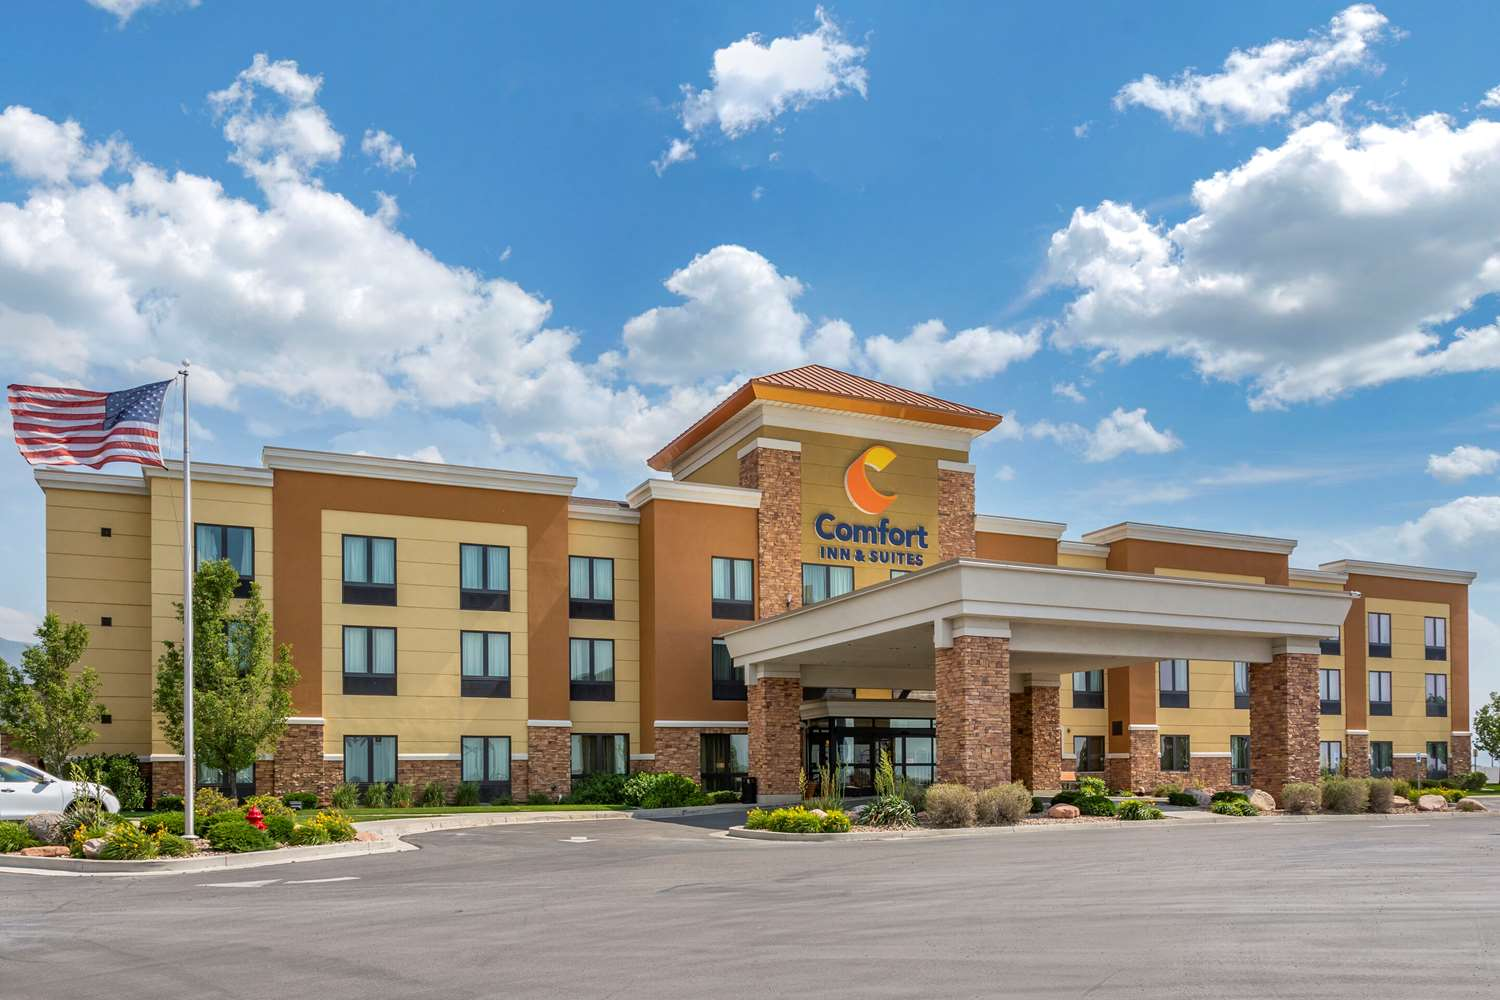 Hotels In Provo Utah That Allow Pets